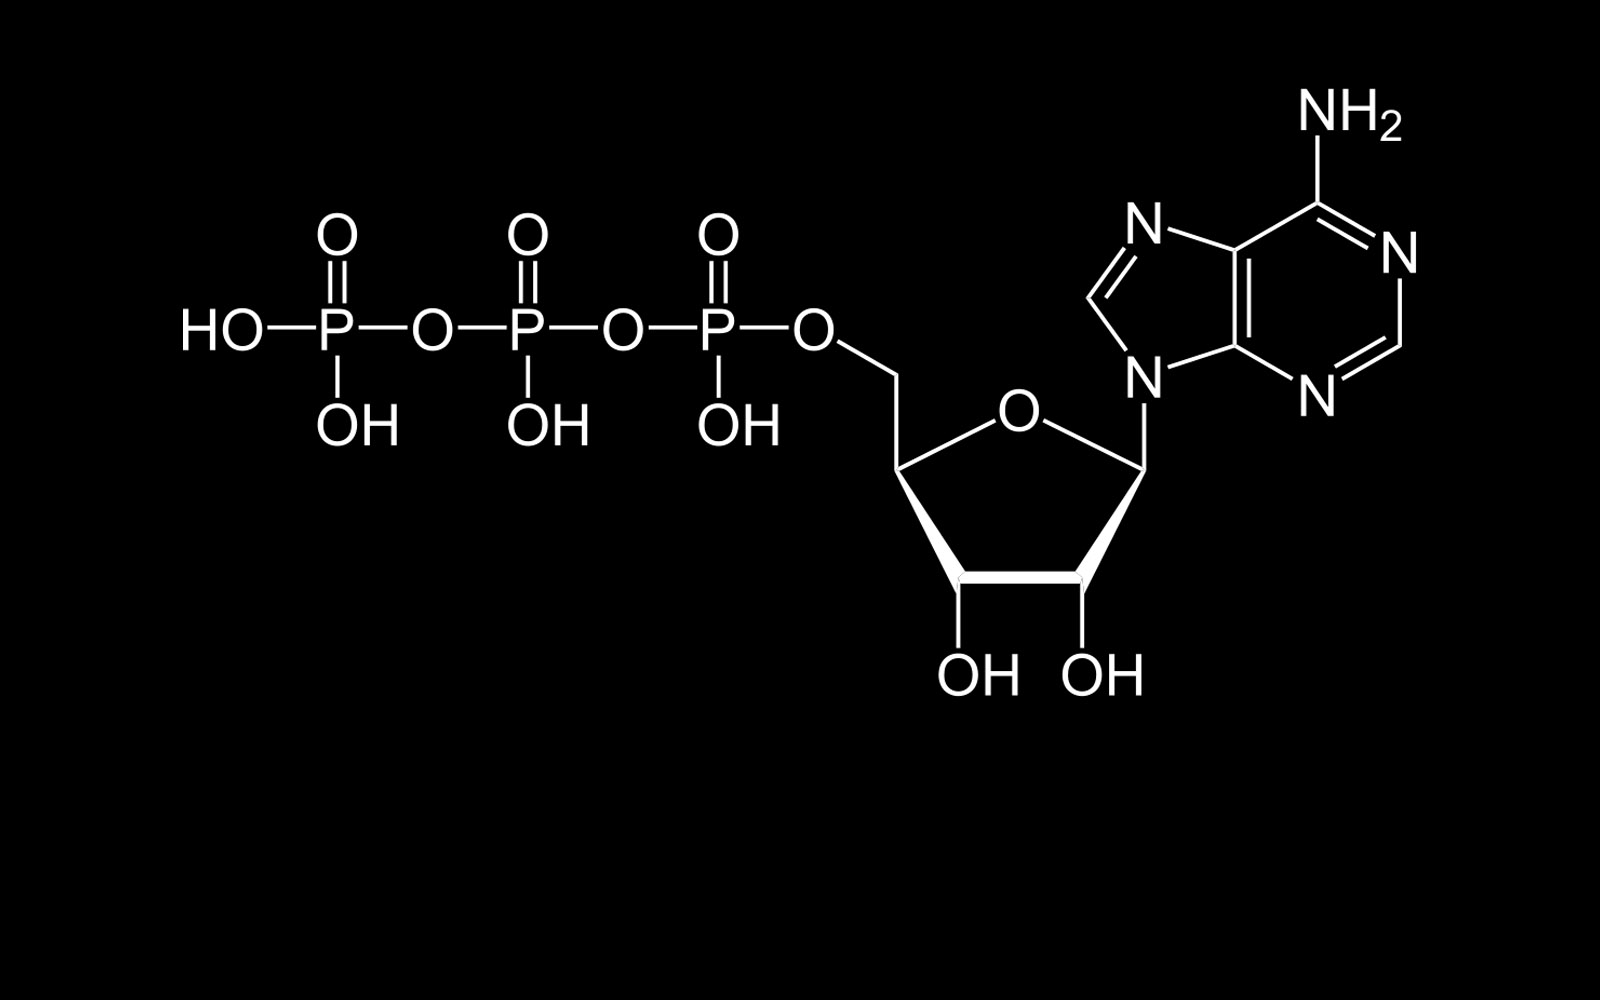 hight resolution of a diagram representing the simplified chemical structure of the adenosine triphosphate molecule atp